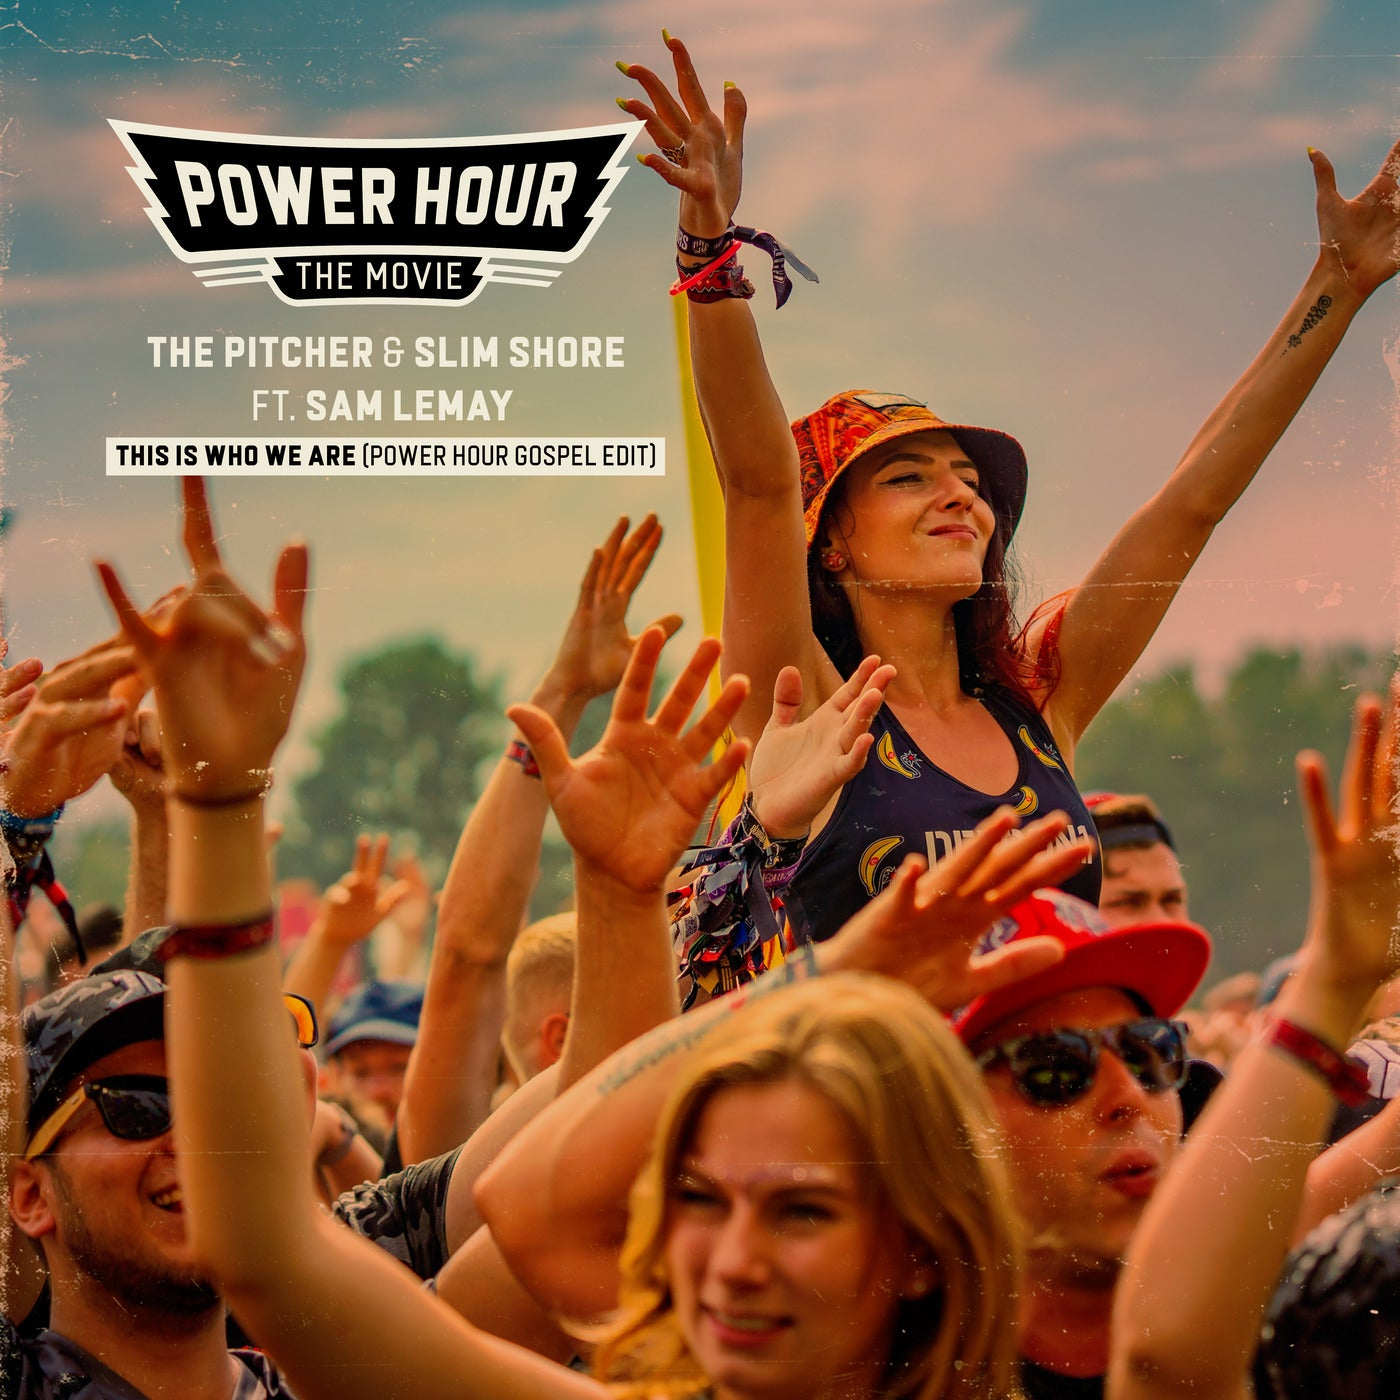 This Is Who We Are feat. Sam LeMay (Power Hour Gospel Edit Extended Mix)